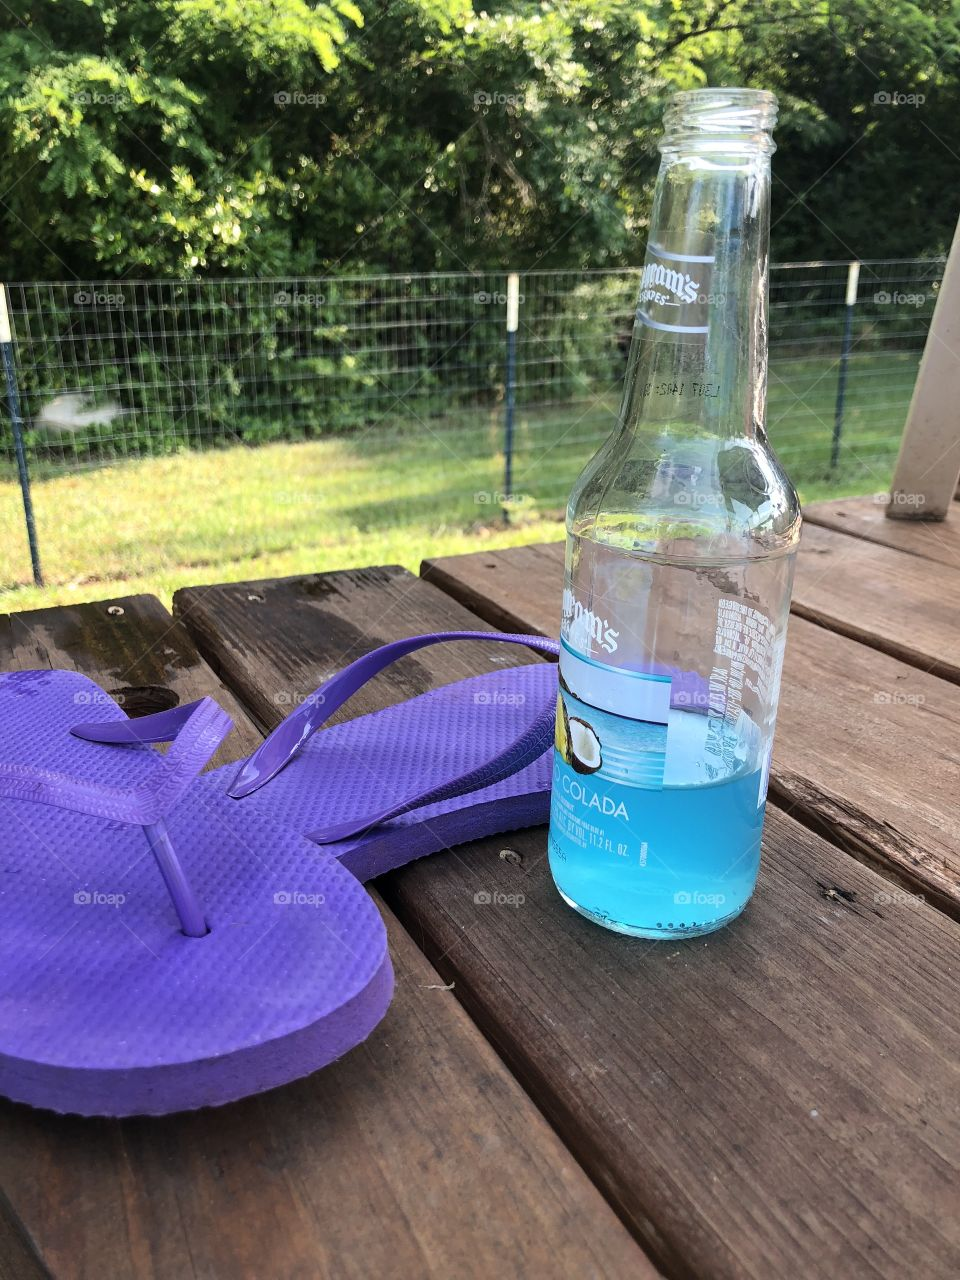 A cool blue drink on deck along with purple flip flops.